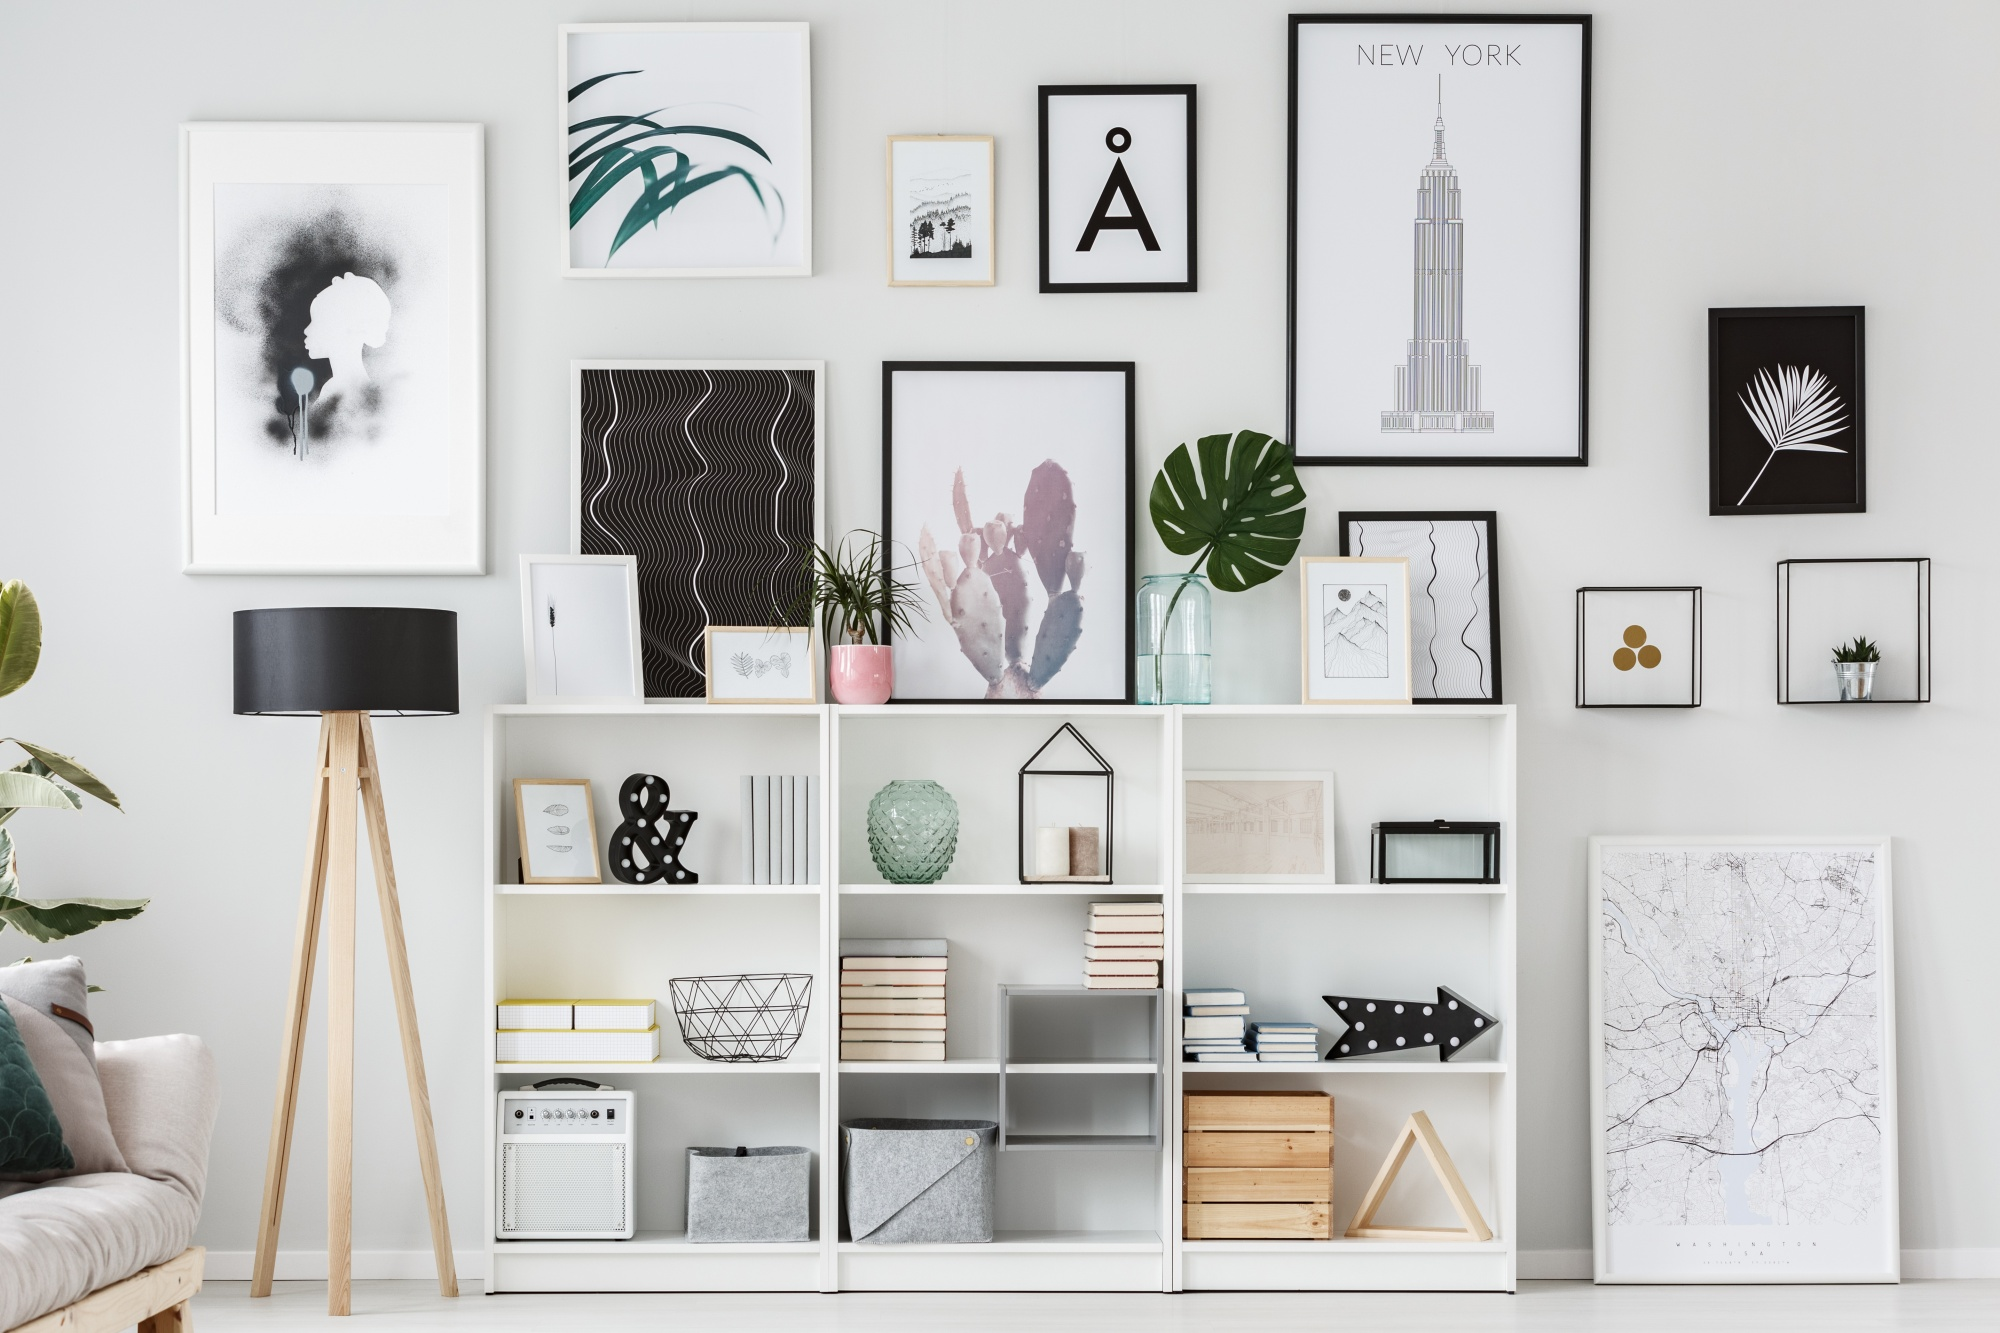 5 Easy Steps To The Perfect and Unique Gallery Wall with a black and white and floral theme showing pieces leaning up against shelves and propped on the floor for a full ceiling to floor look which includes white shelving